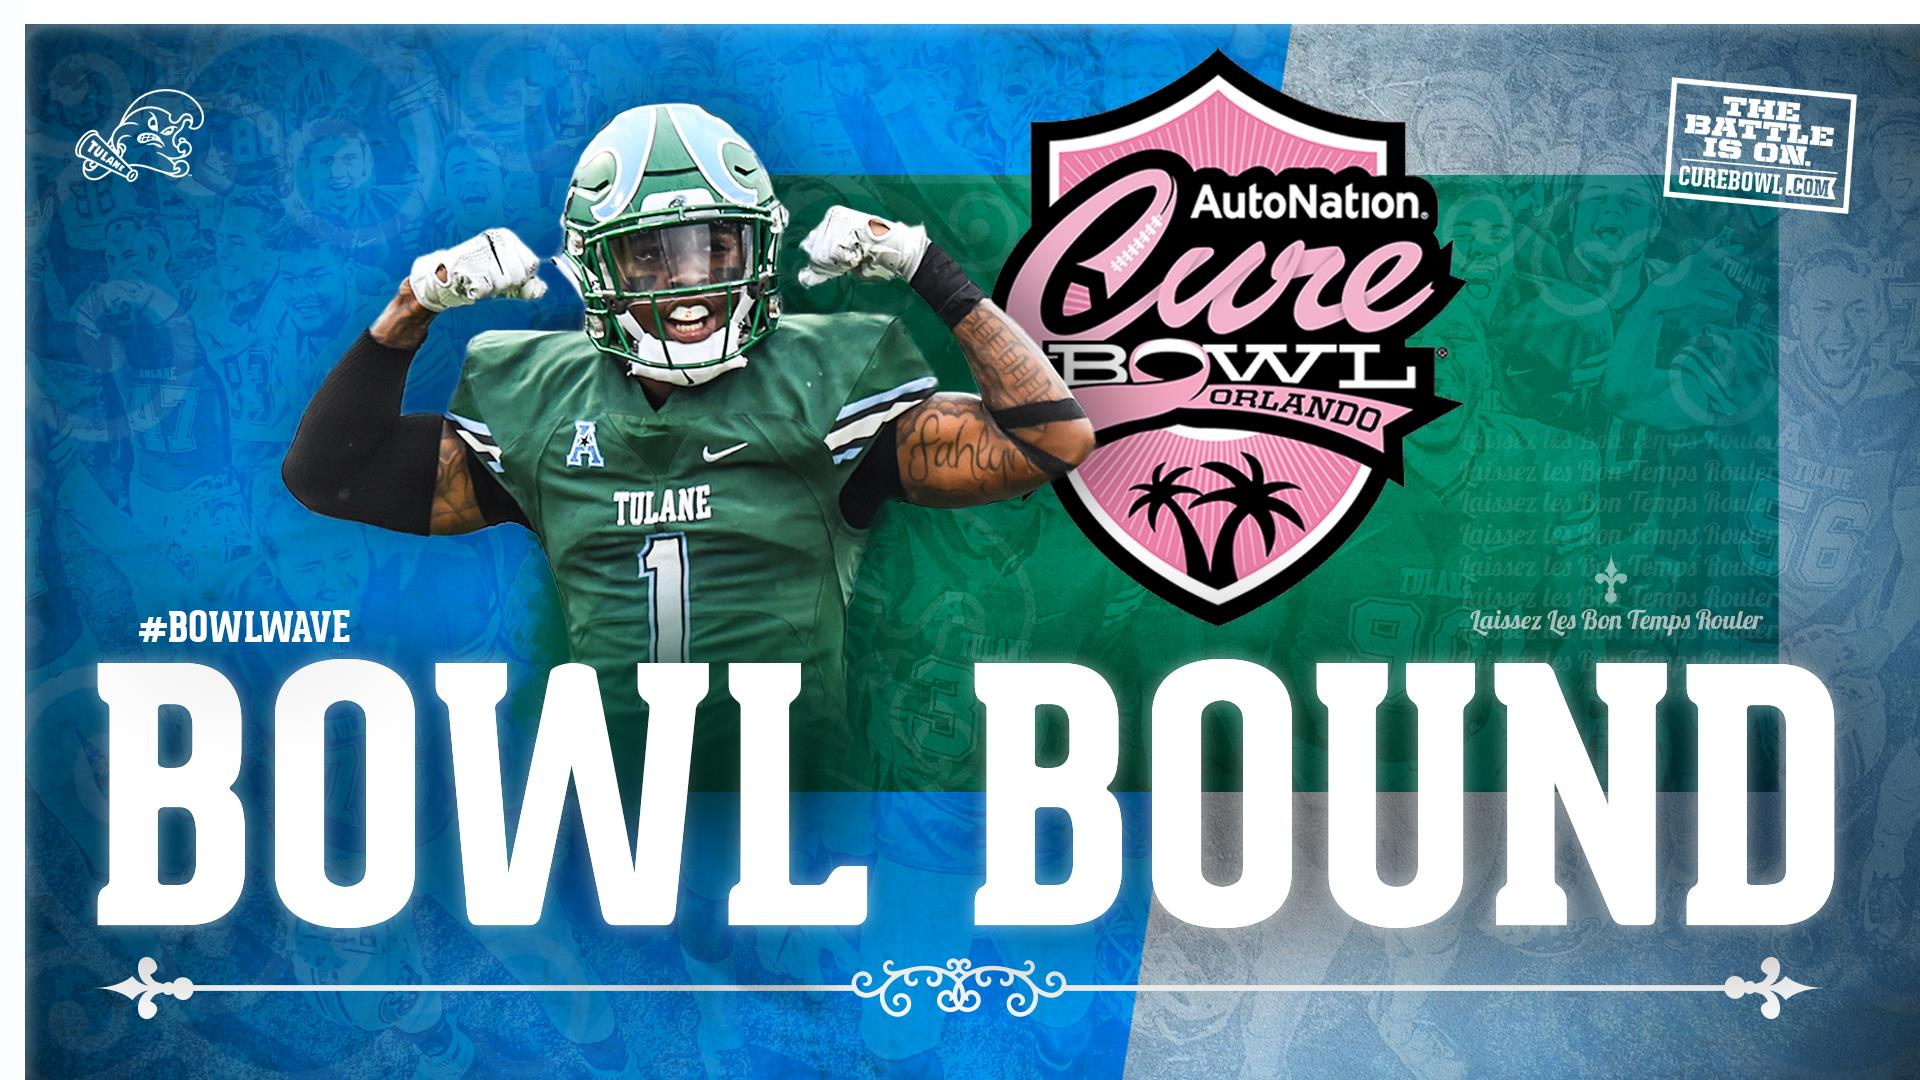 a1c7b430ff0e The Tulane Green Wave became bowl eligible for the first time since 2013  with a nail-biting win over the United States Naval Academy on November  24th.